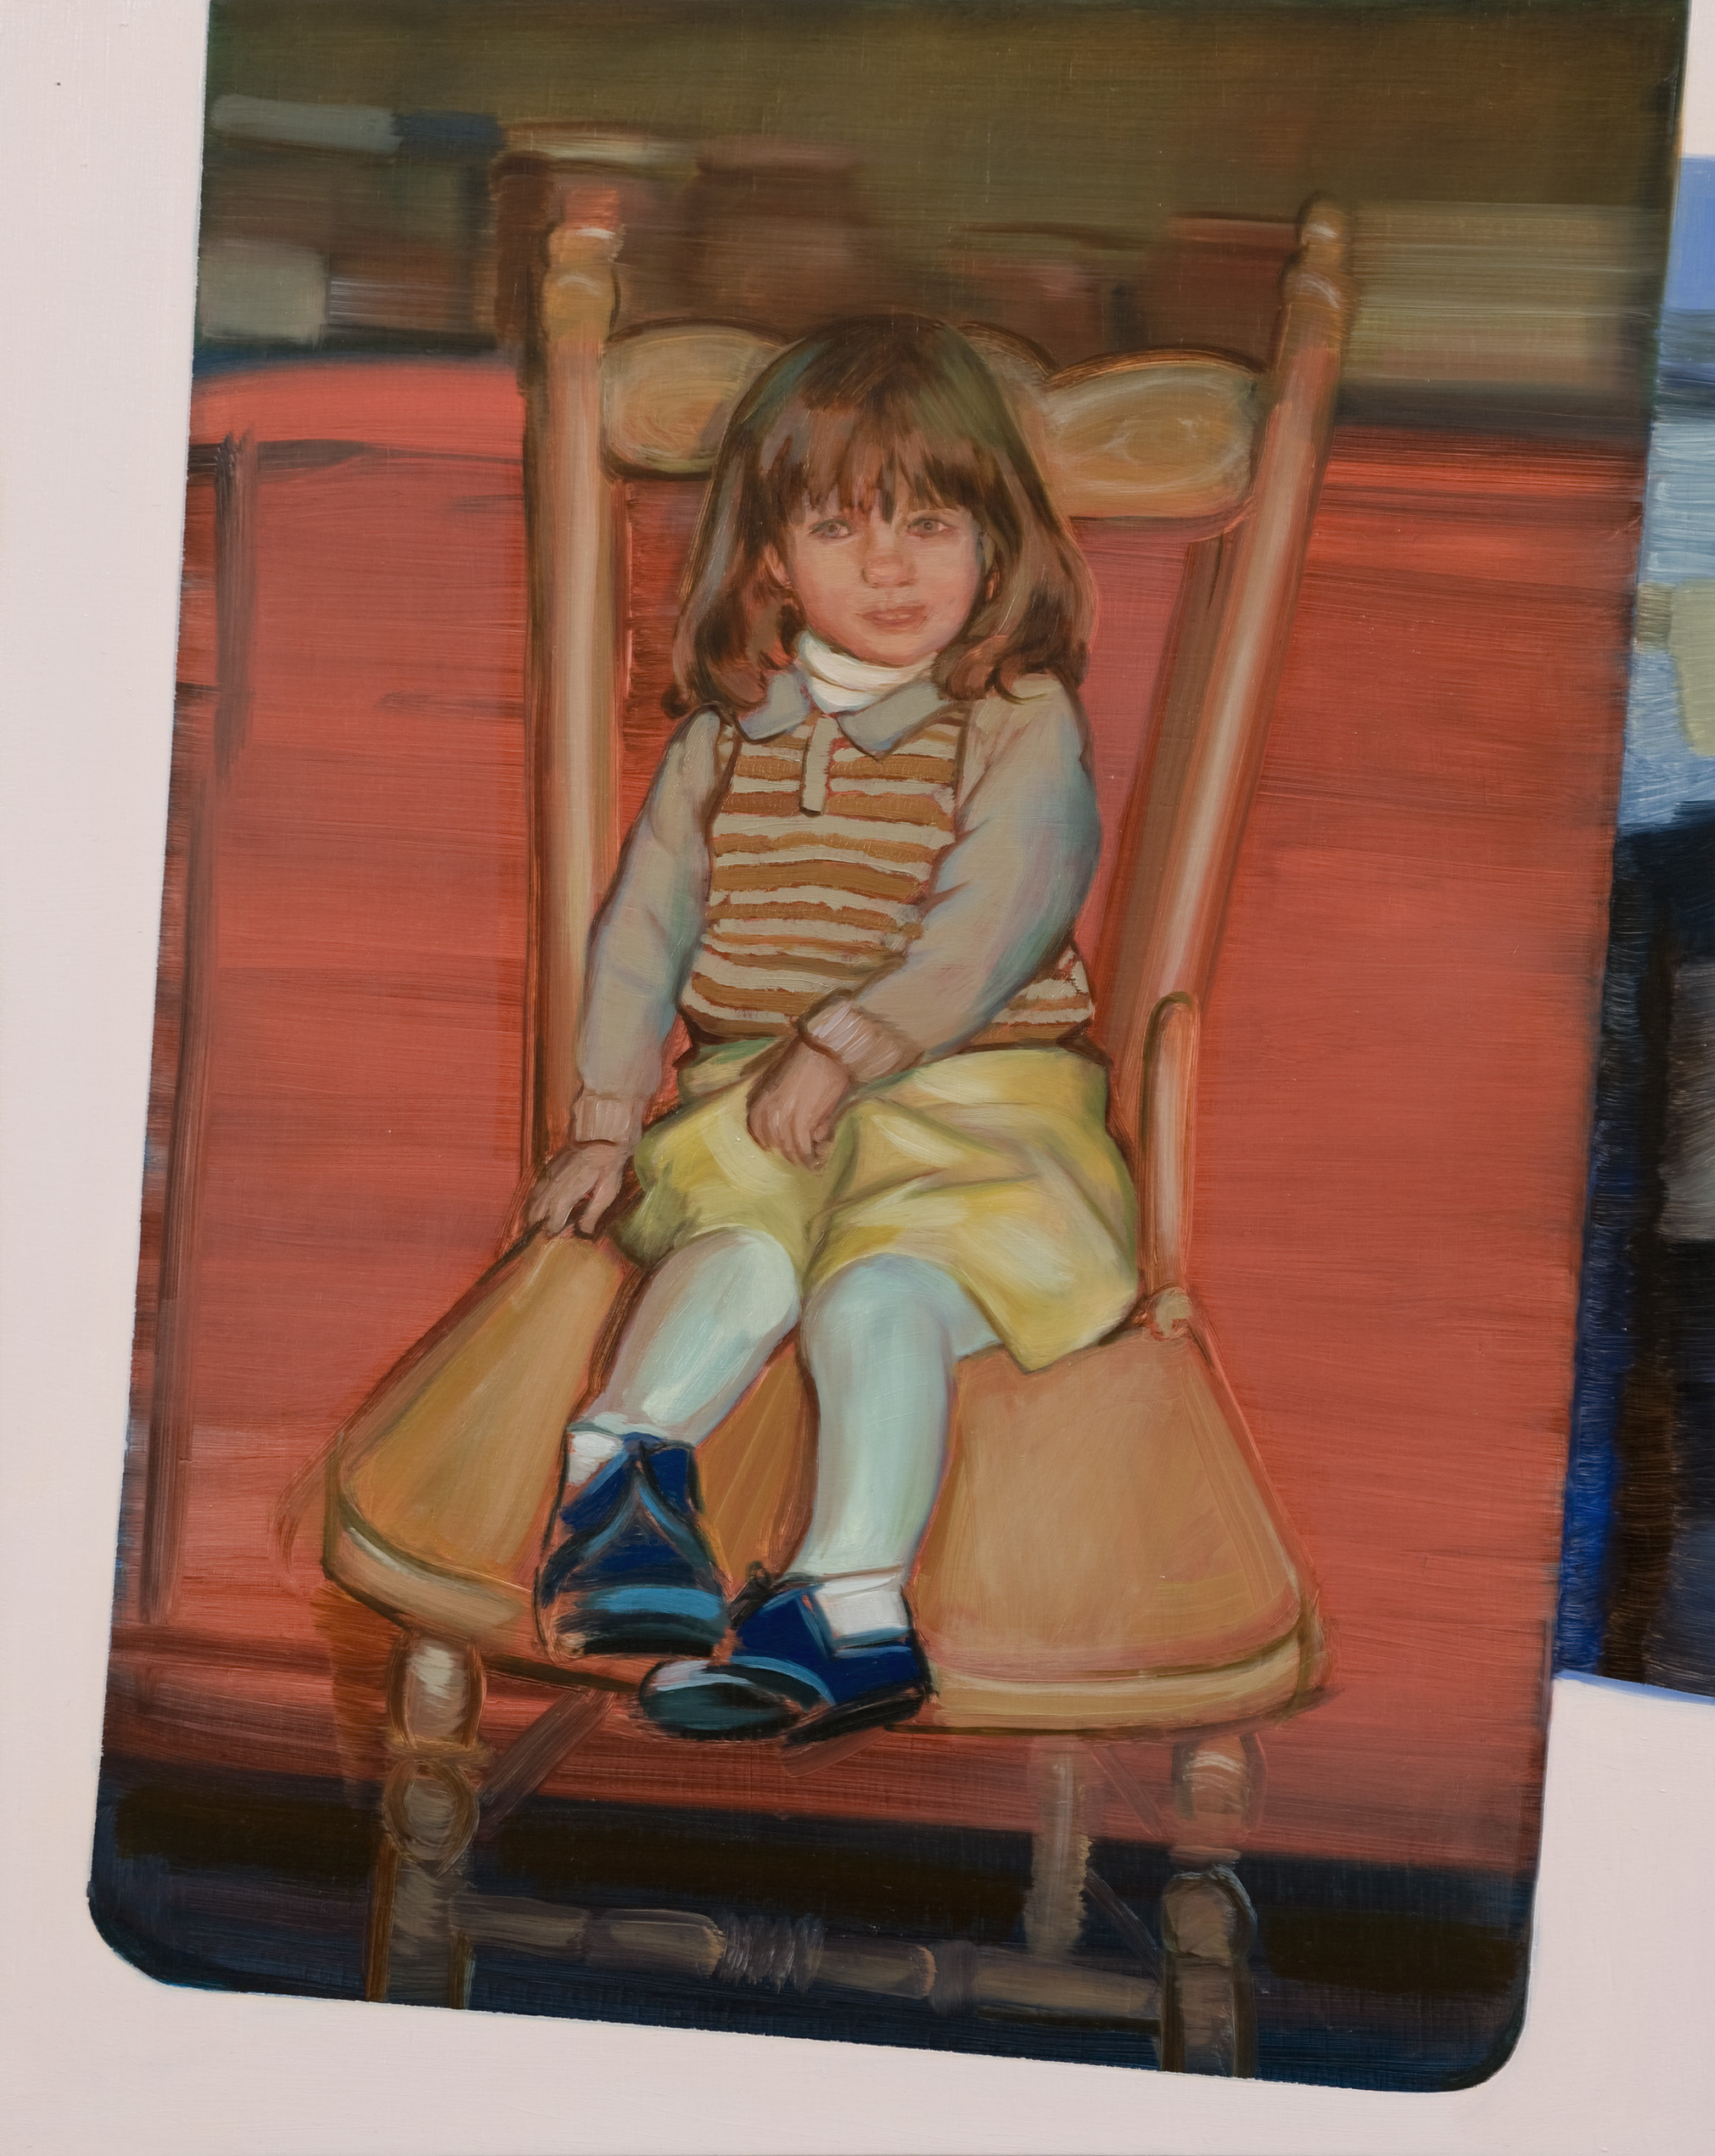 Highchair,  Oil on board with Vic Ash frame, 50 x 40 cm, 2011. Photograph courtesy of Jake Walker